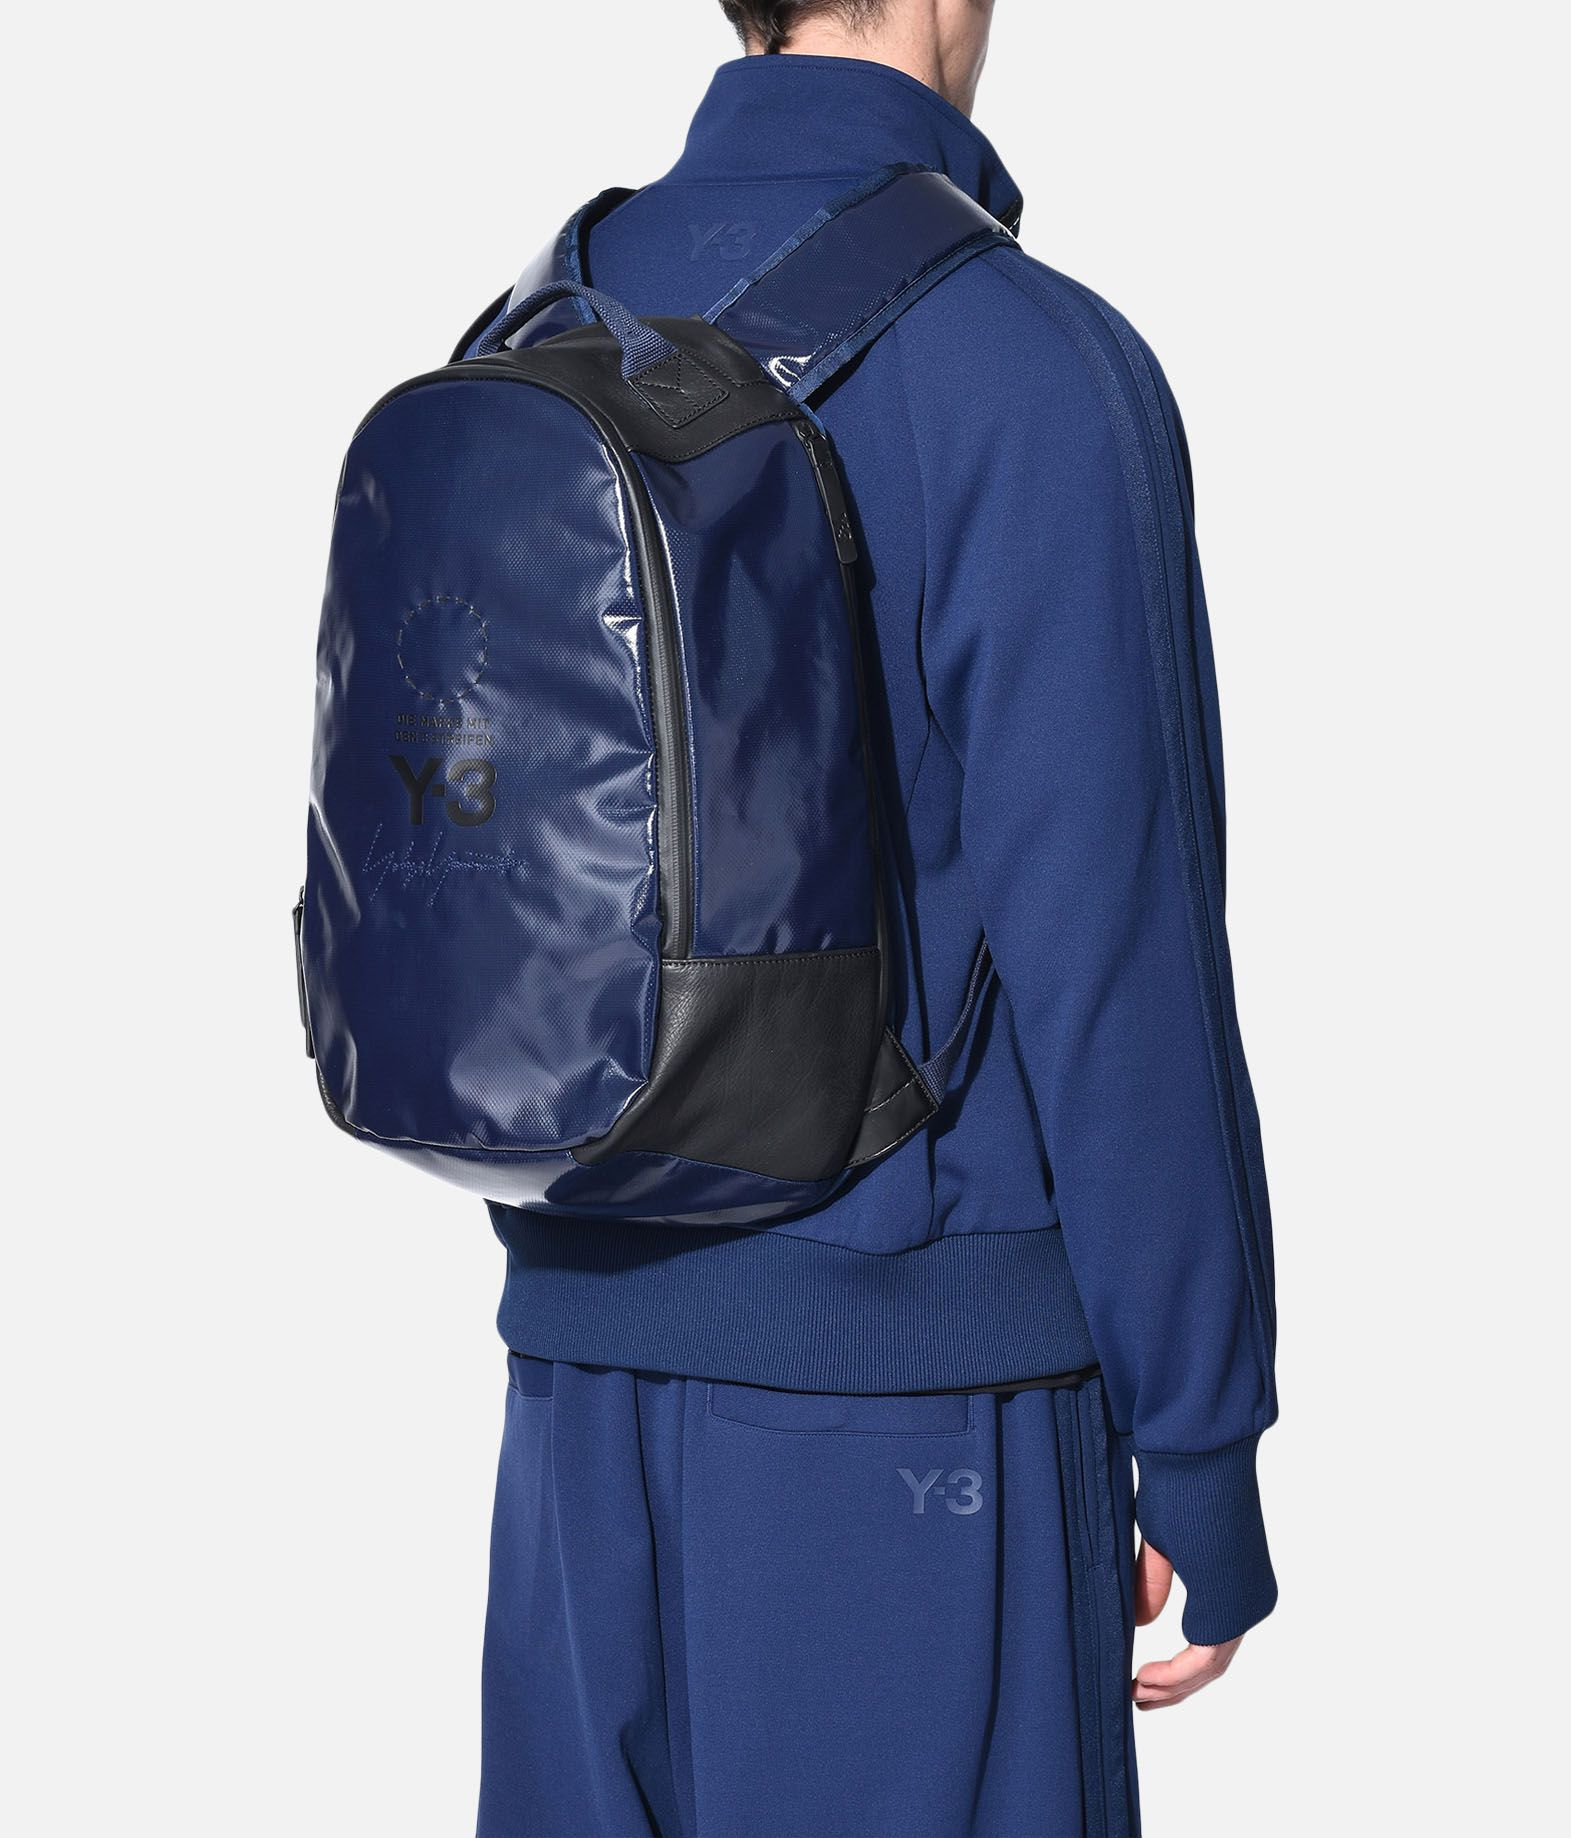 Y-3 Y-3 Logo Backpack Рюкзак E a